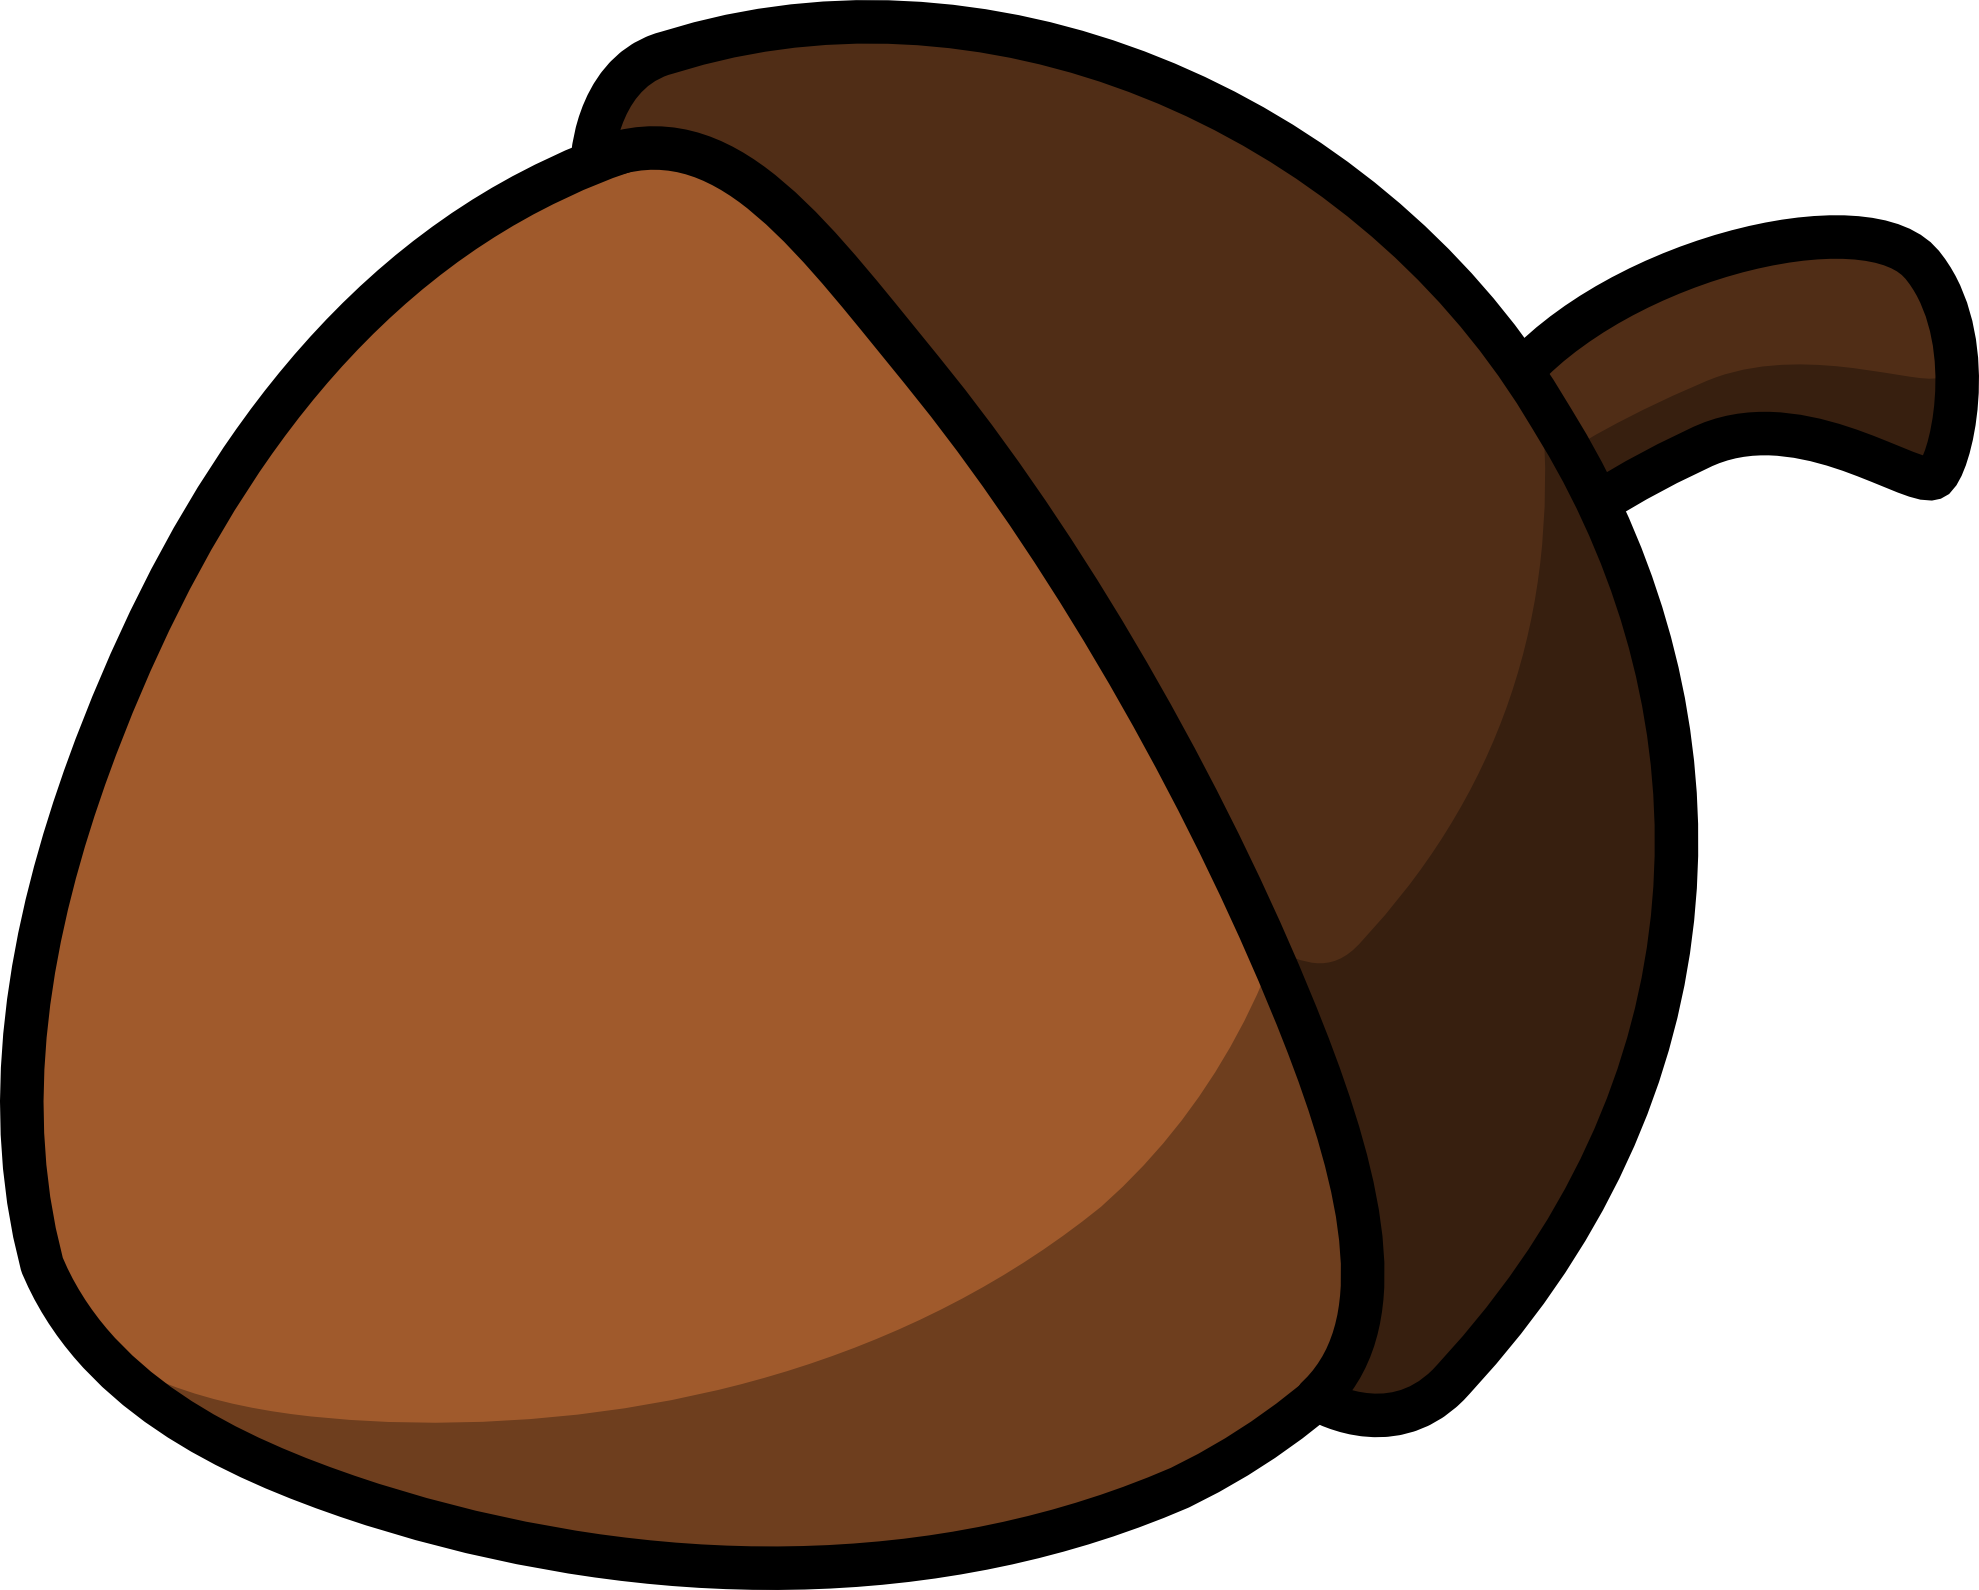 Nuts transparent outline. Free svg clip art